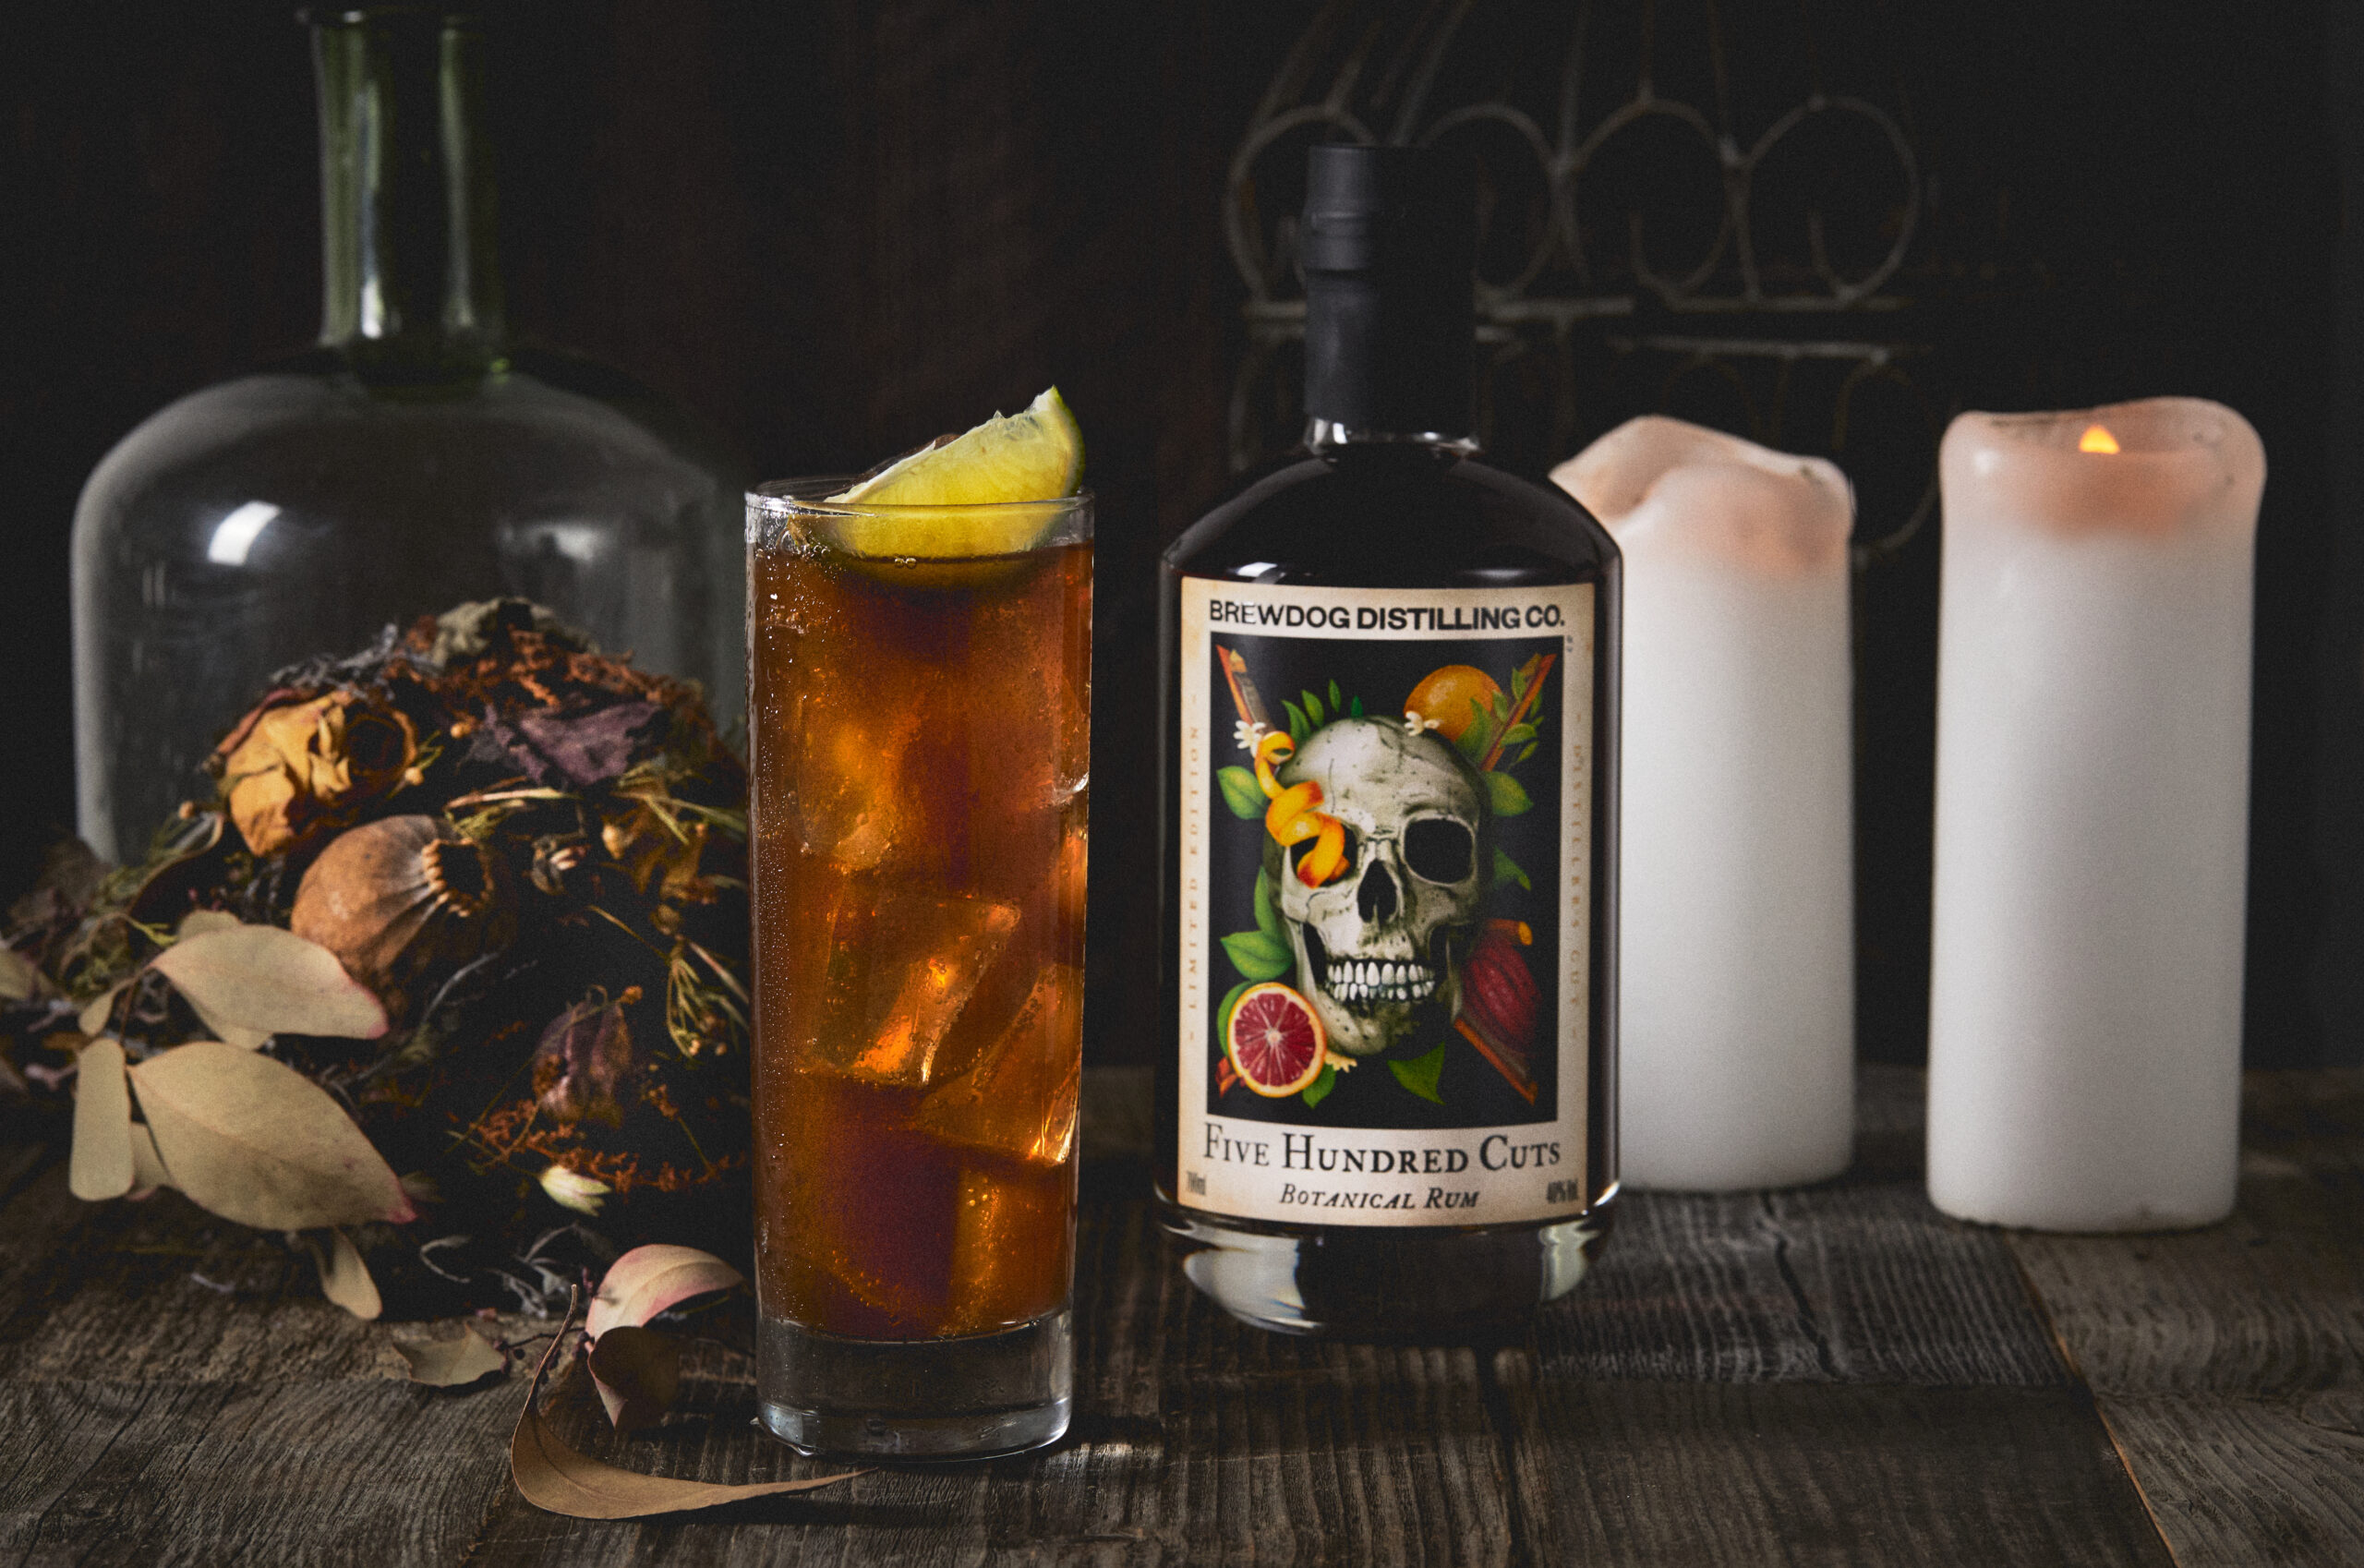 Christmas Gifts For Him: Distiller's Cut Five Hundred Cuts Rum